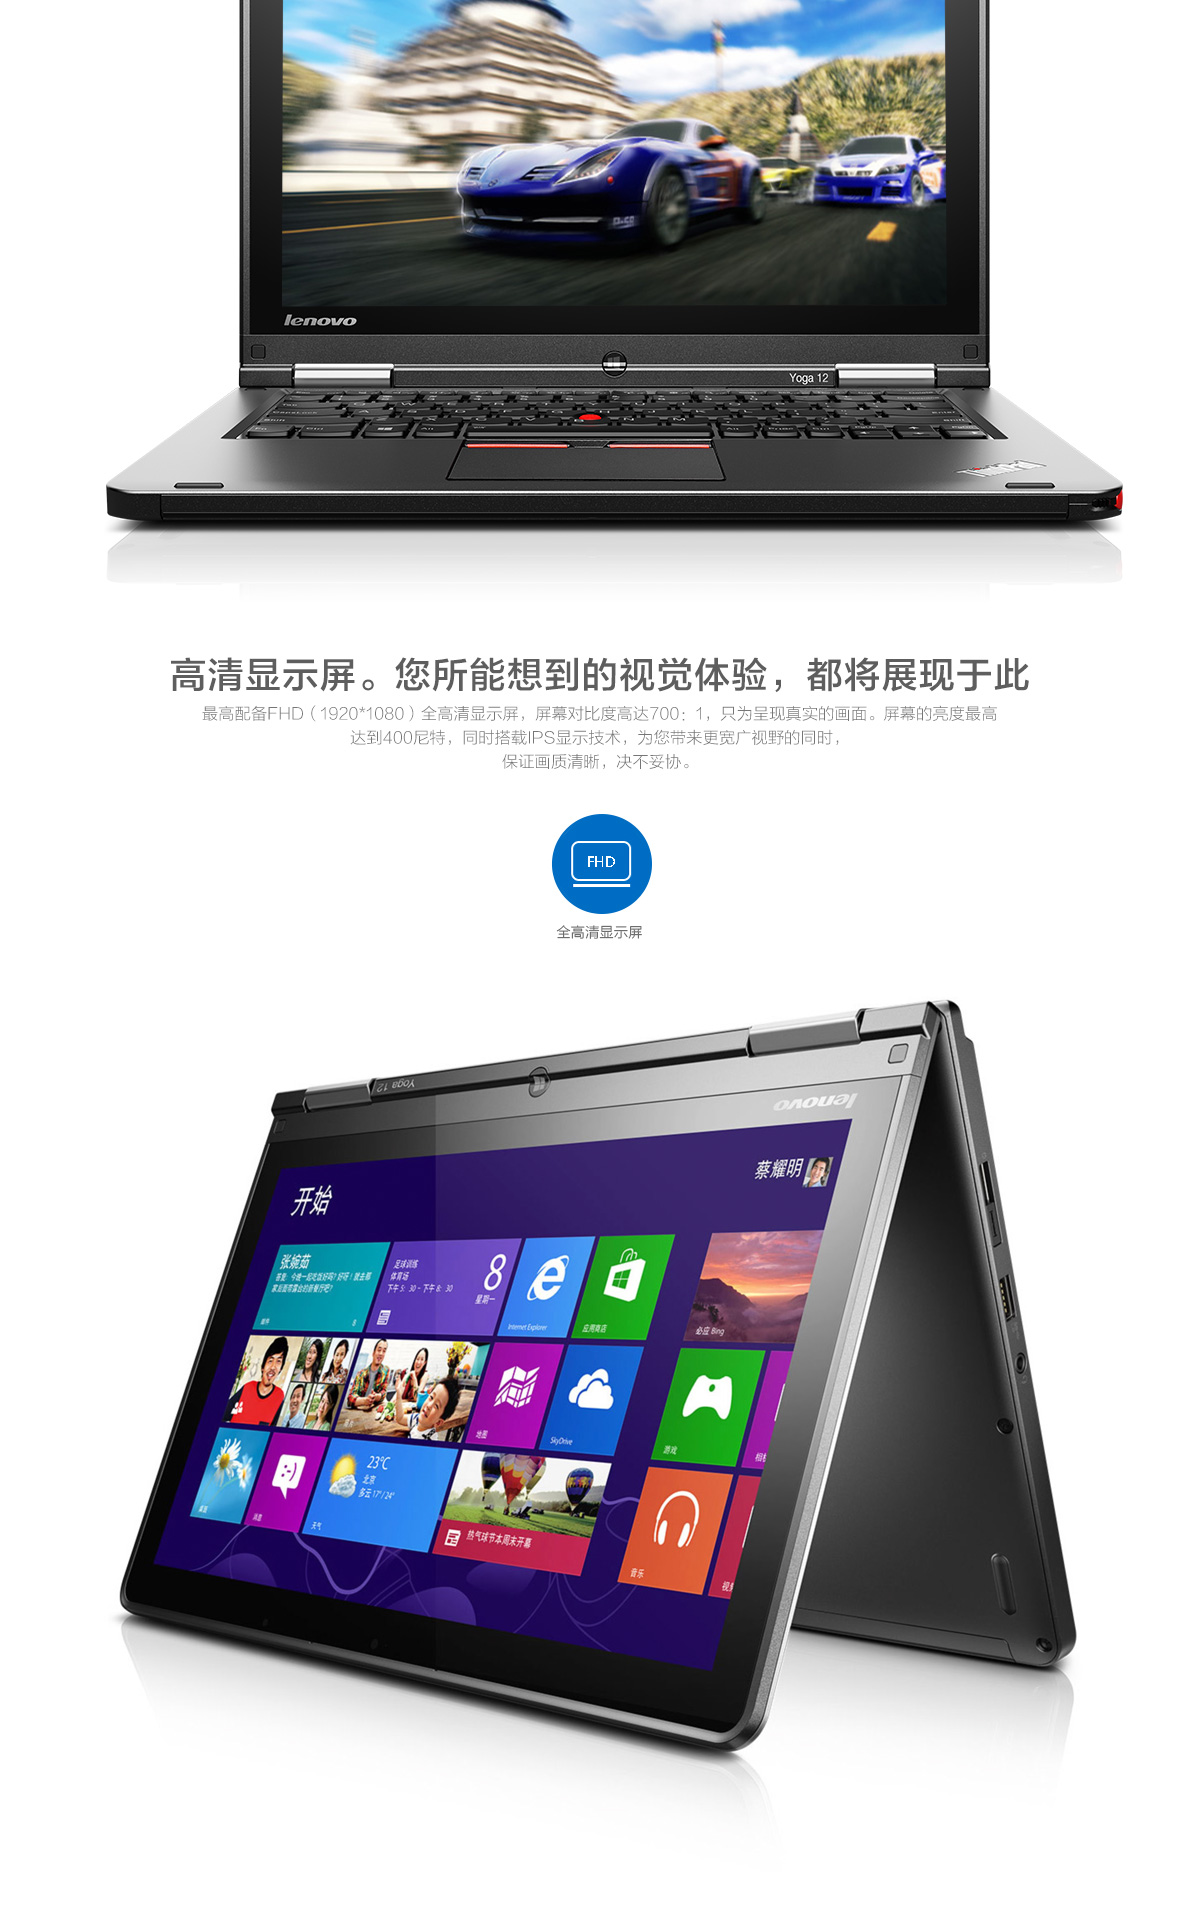 ThinkpadS1 Yoga 2015(PC)5